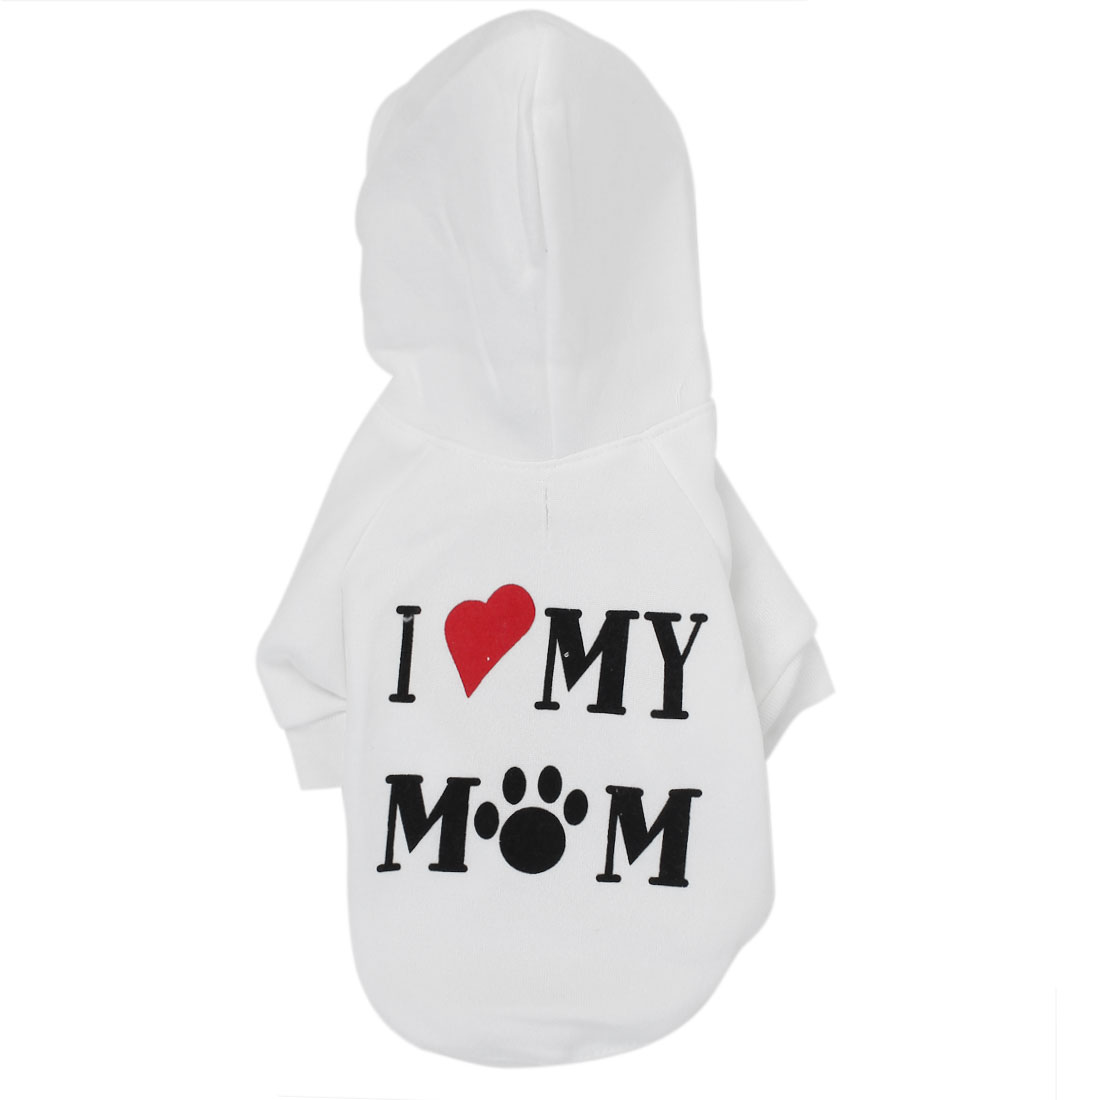 I LOVE MOM Pet Cat Puppy Clothes Hoodie Warm Coat Apparel Costume White Size M